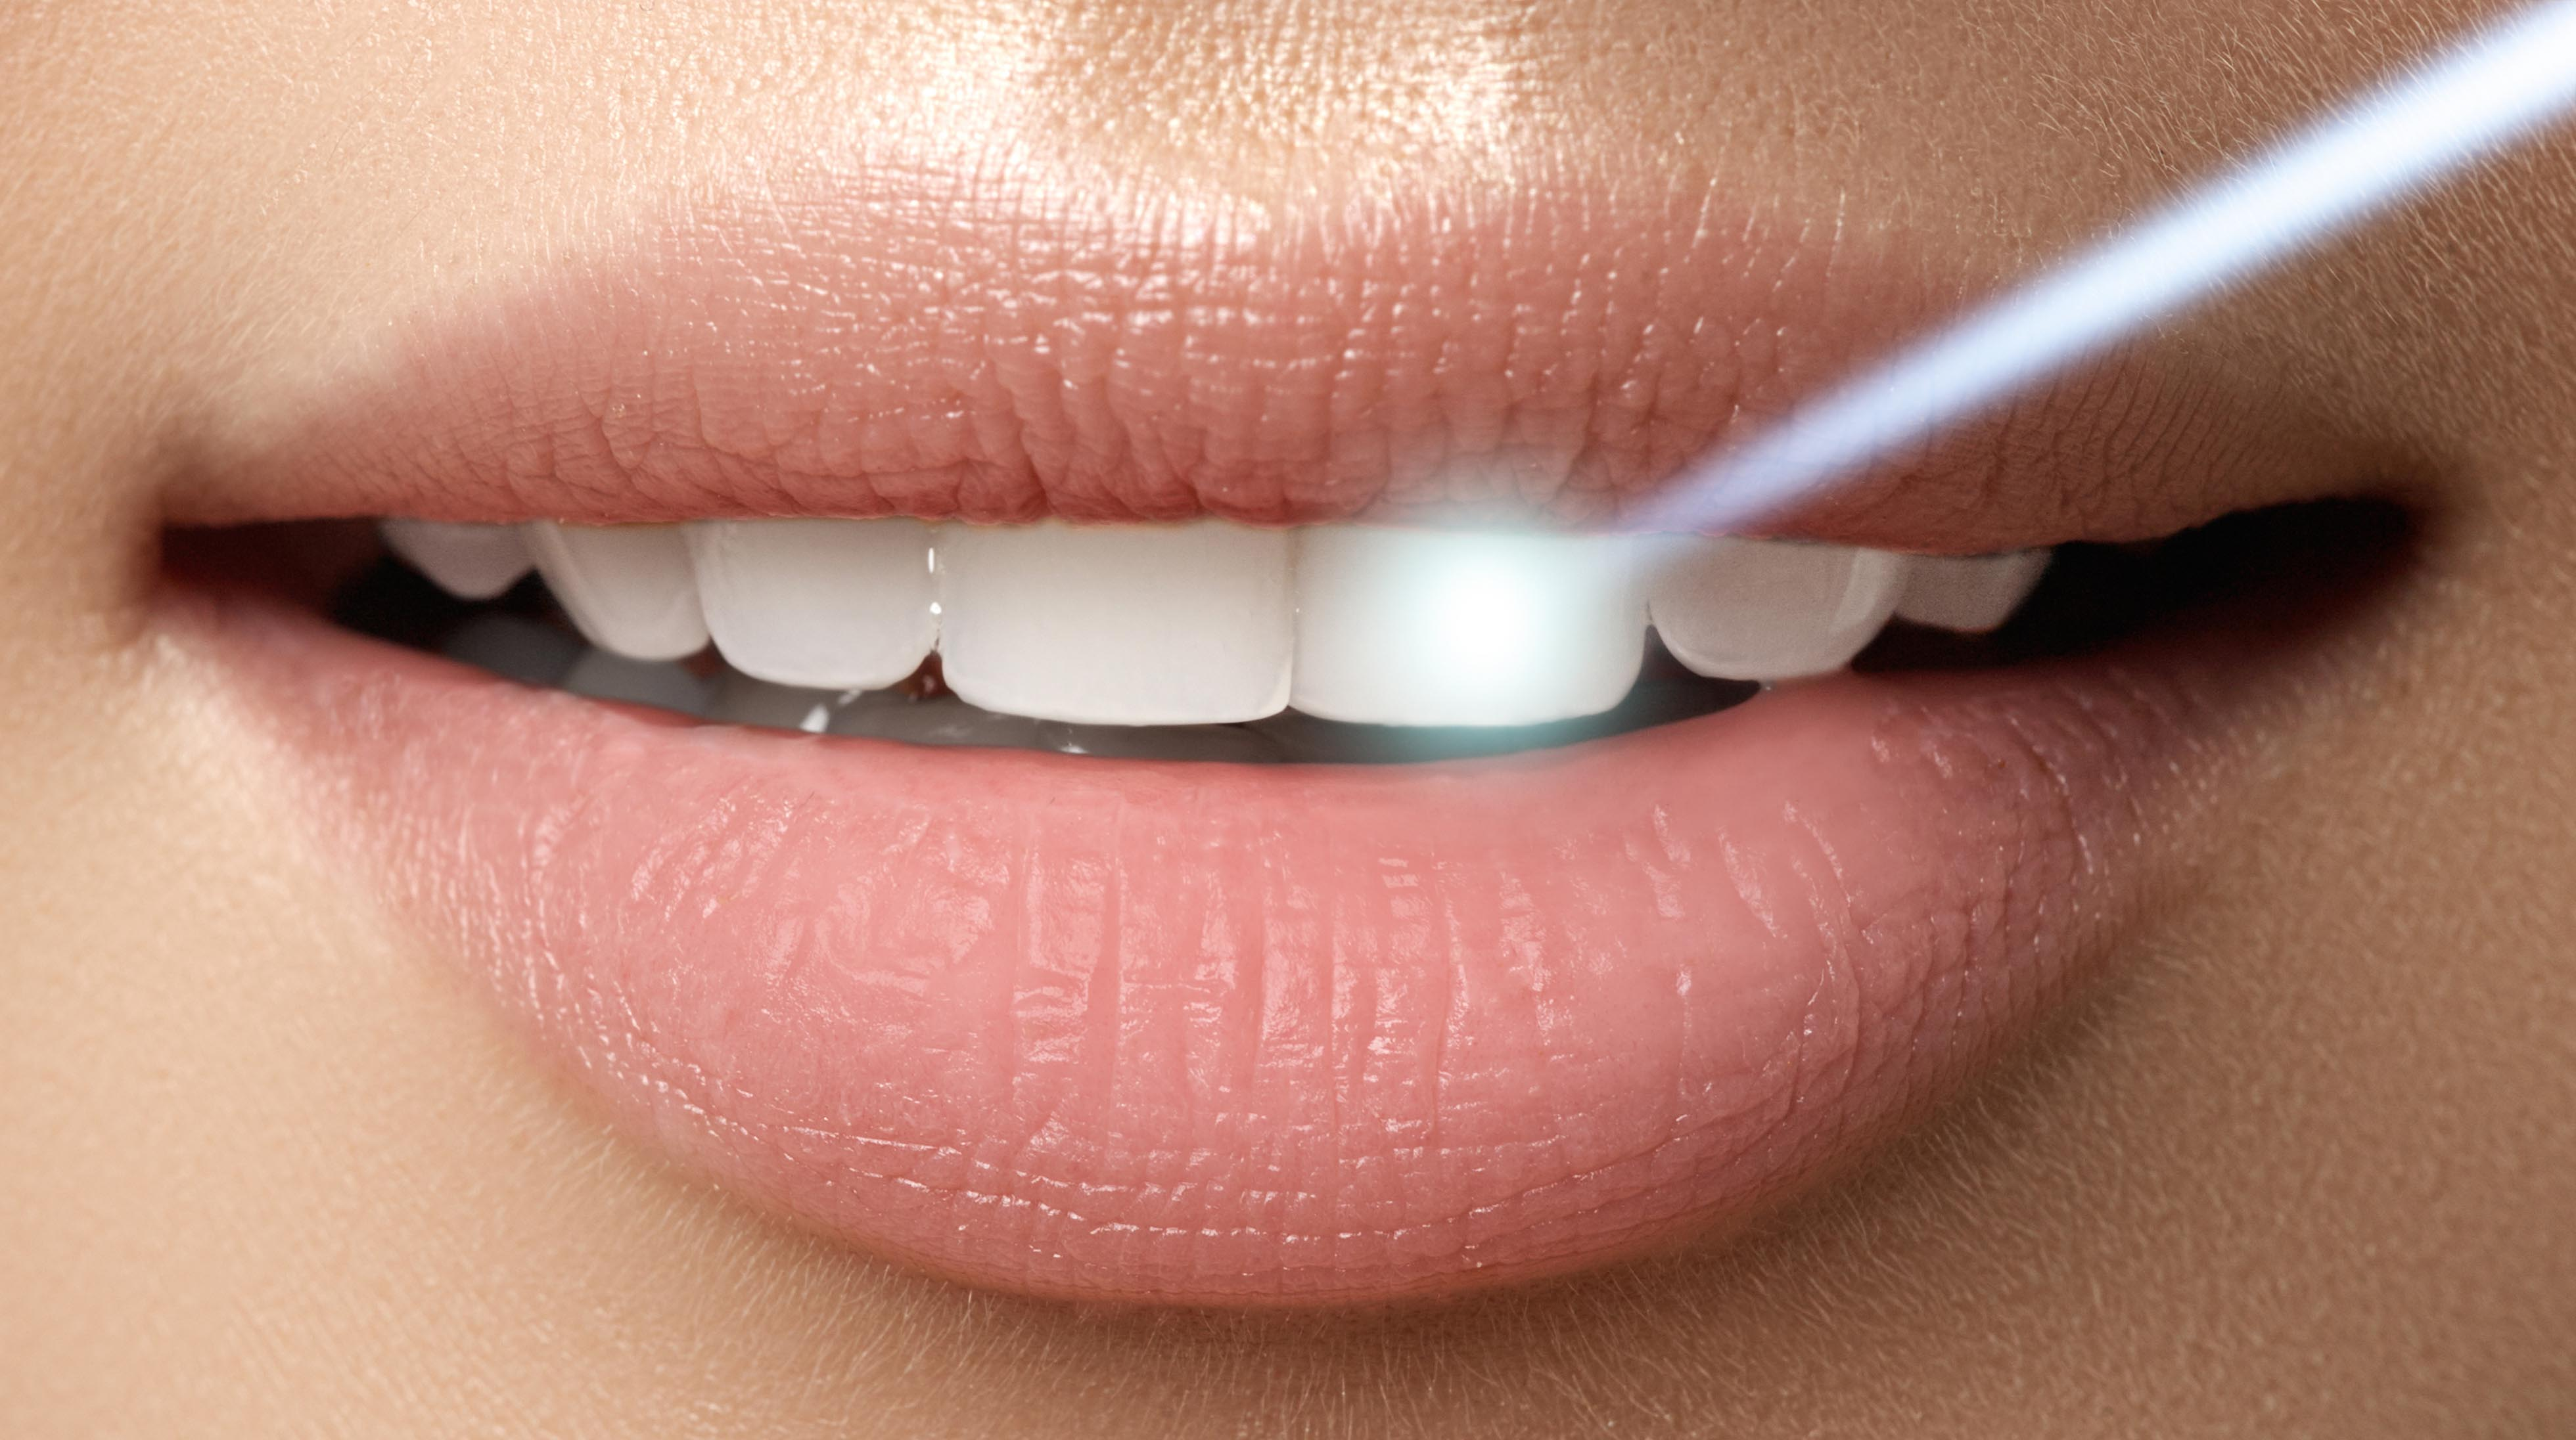 The rise of illegal tooth whitening in Britain